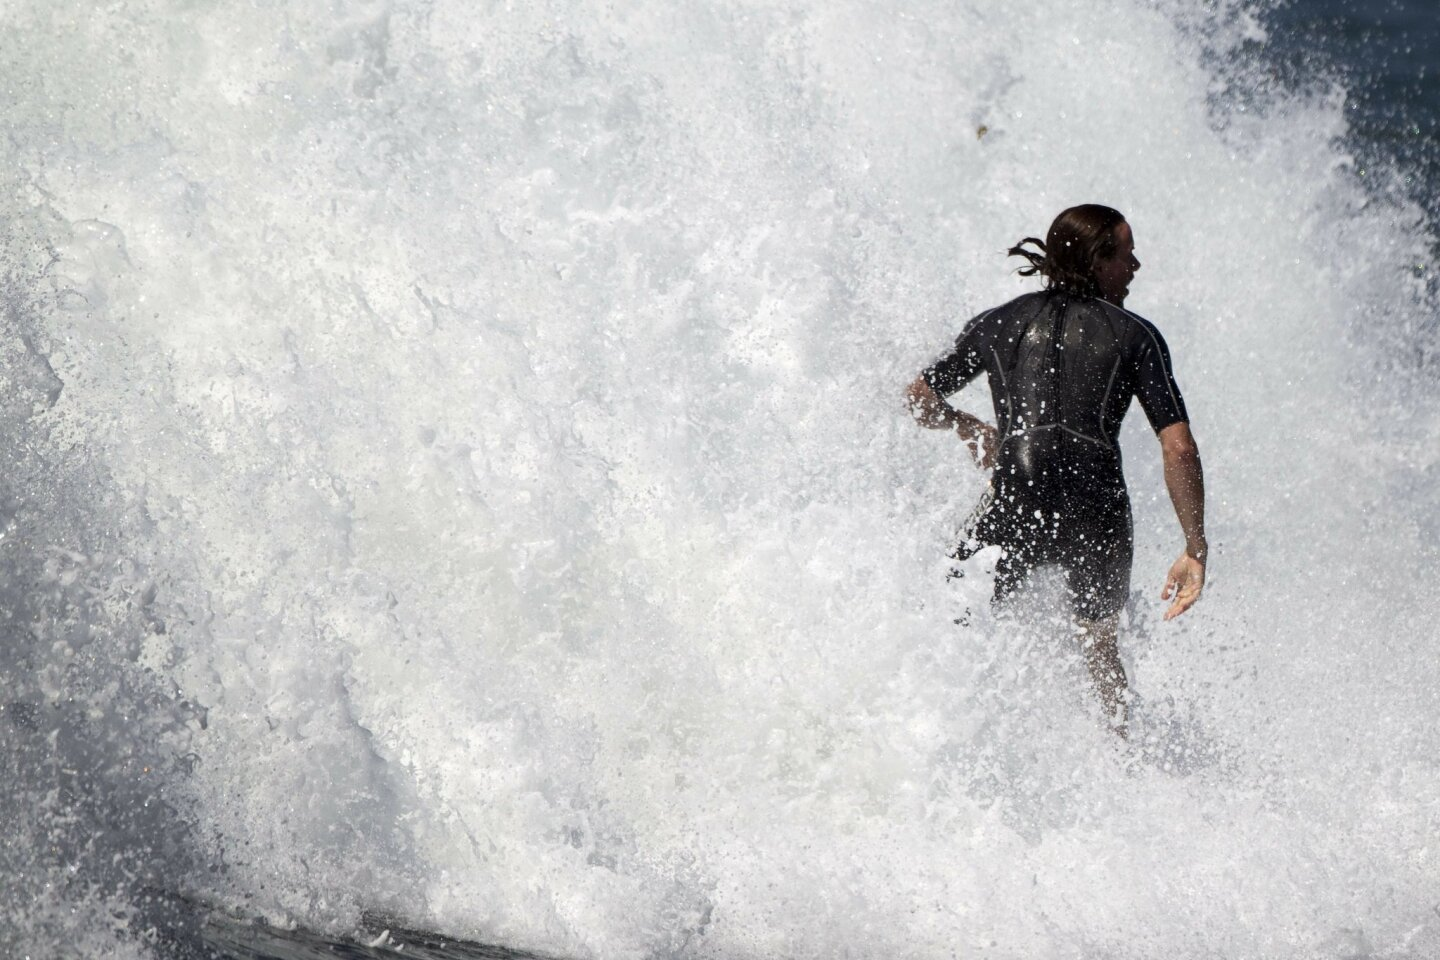 Southwest swell brings big waves